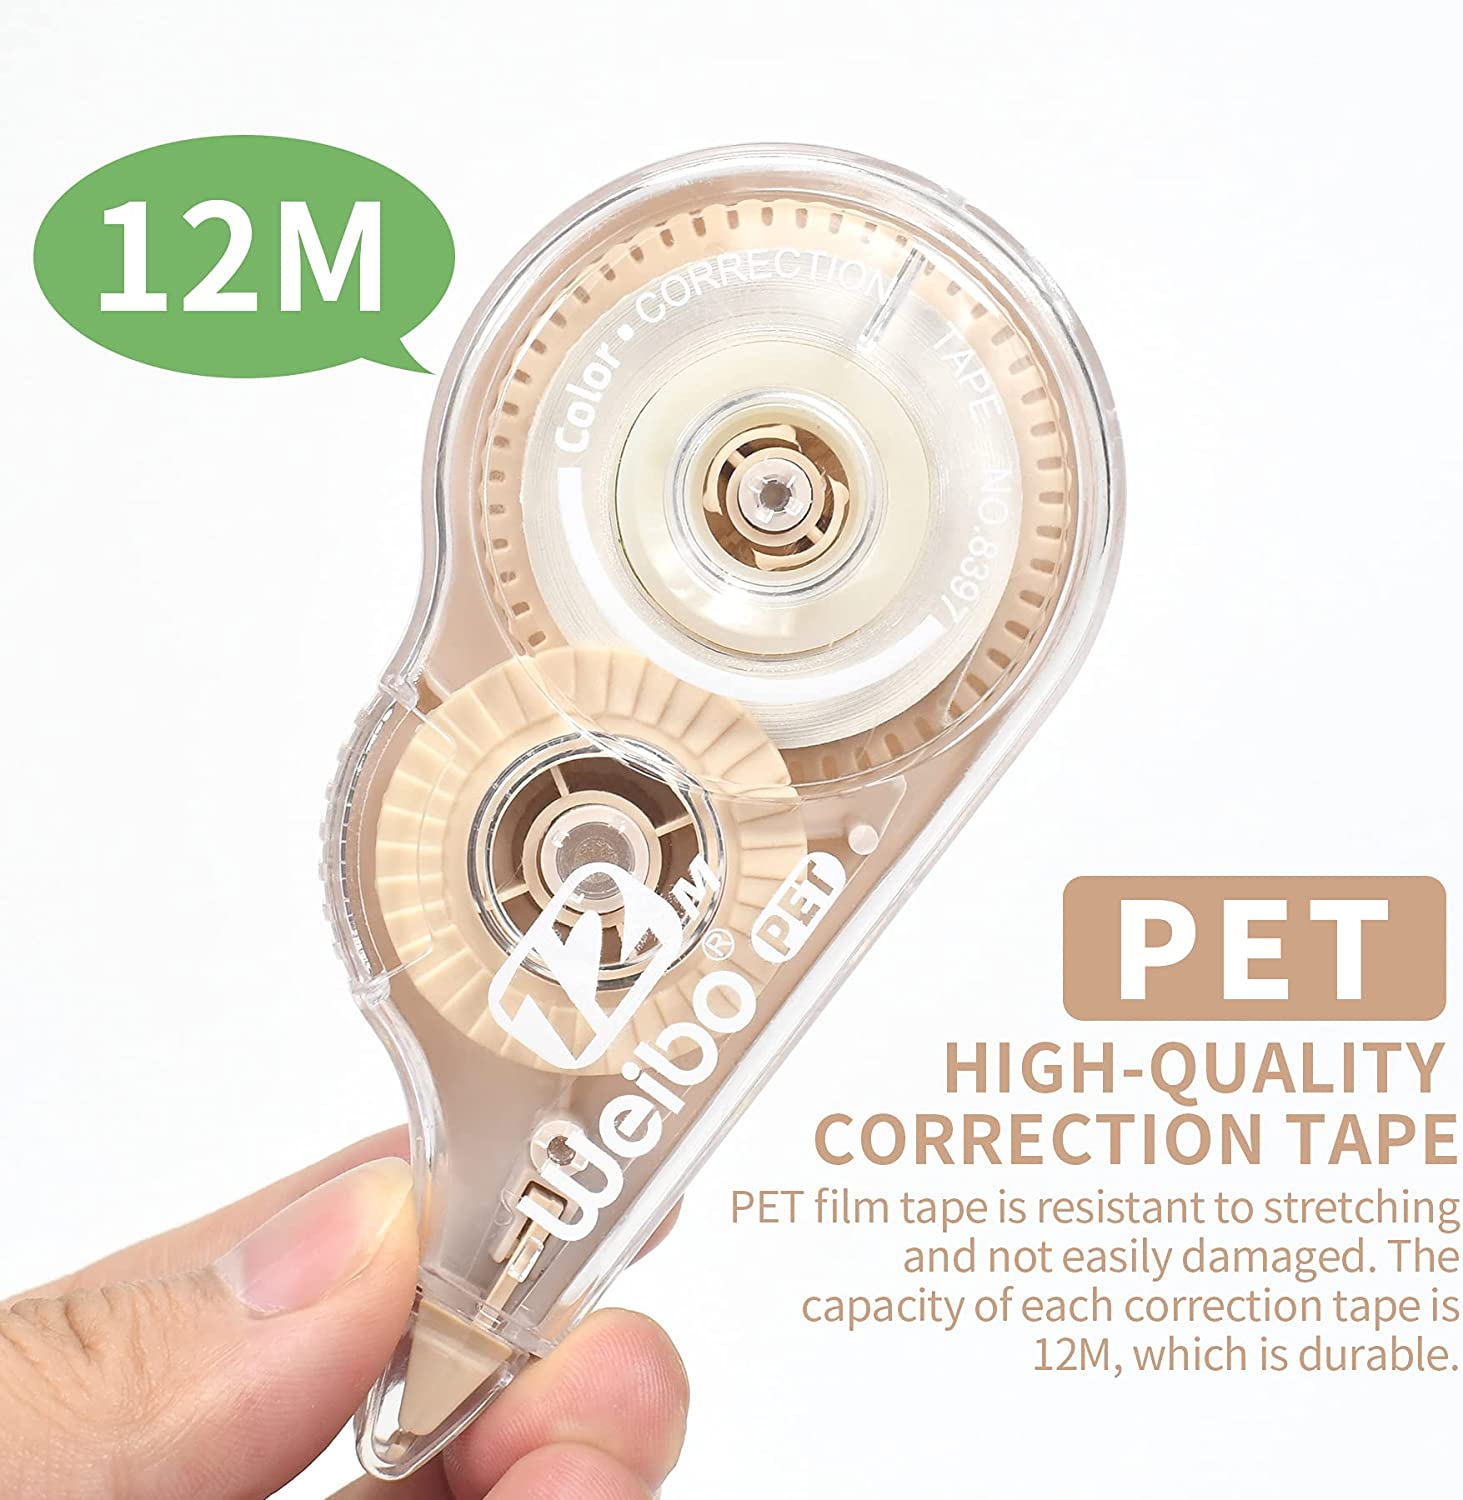 WeiBo Whiteout Correction Tape, Easy To Use Applicator for Instant Corrections, For Office Administration, Note Taking, Marking, Crafting, Bullet Journal, Scrapbooking (Pack Of 6, 12m/472in) : Office Products